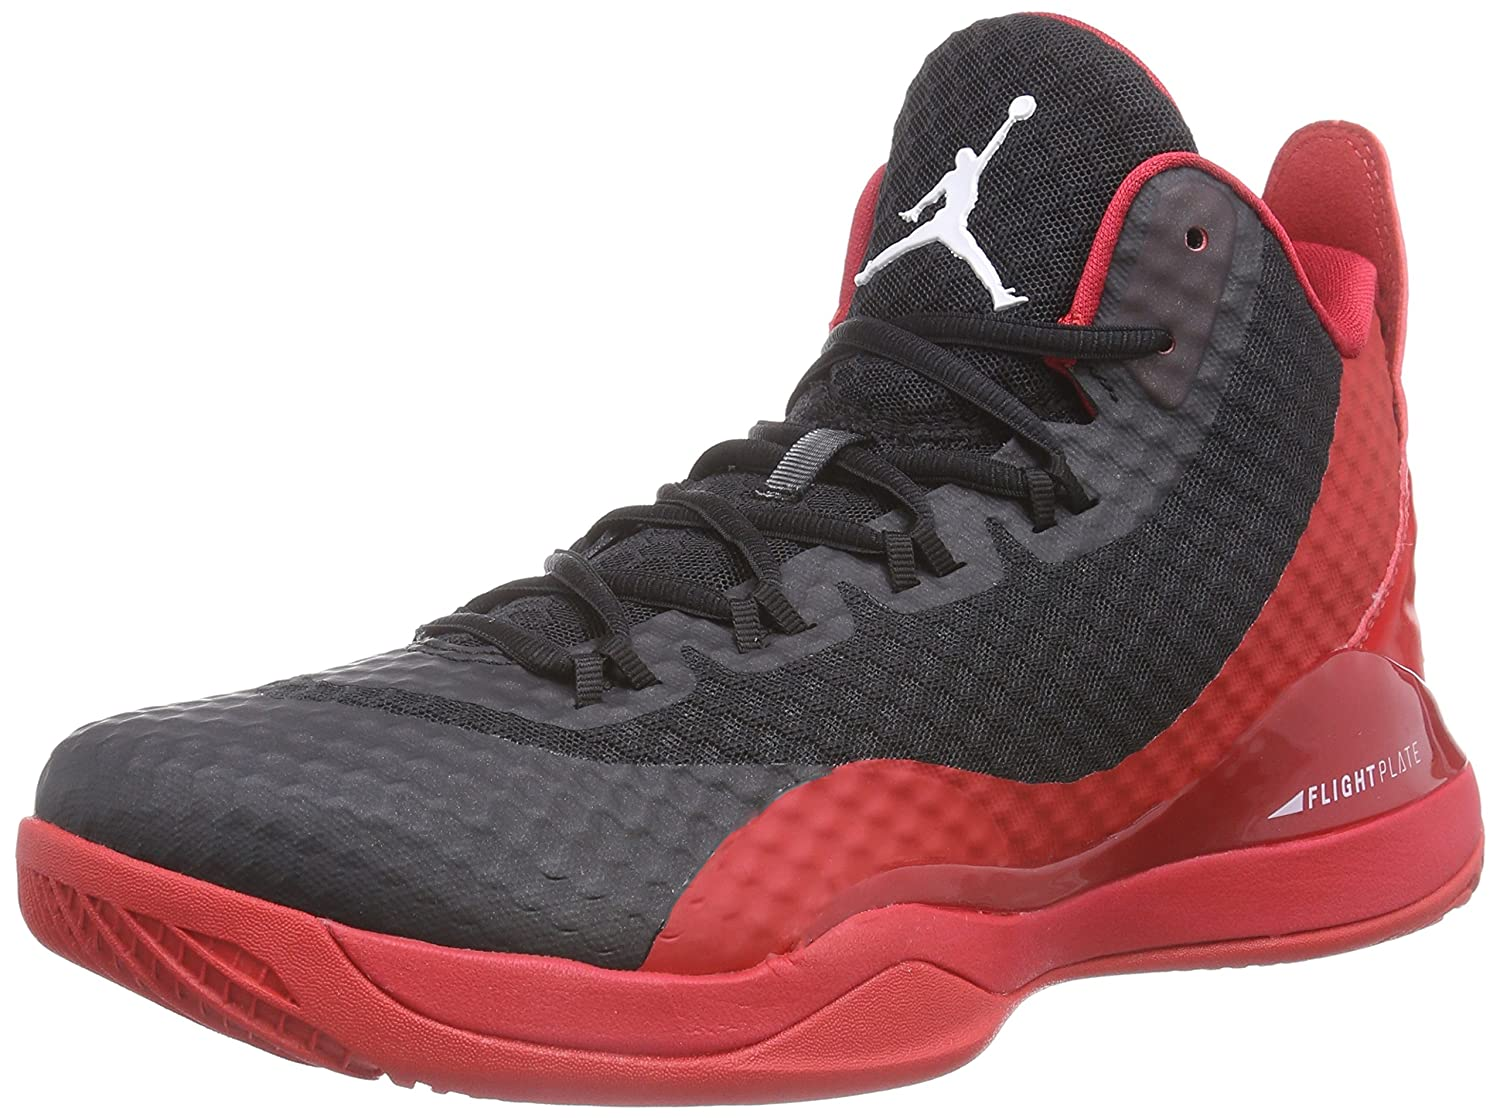 promo code 75b39 a59bf Nike Jordan Super.Fly 3 Po Sz 12 Mens Basketball Shoes Red New In Box